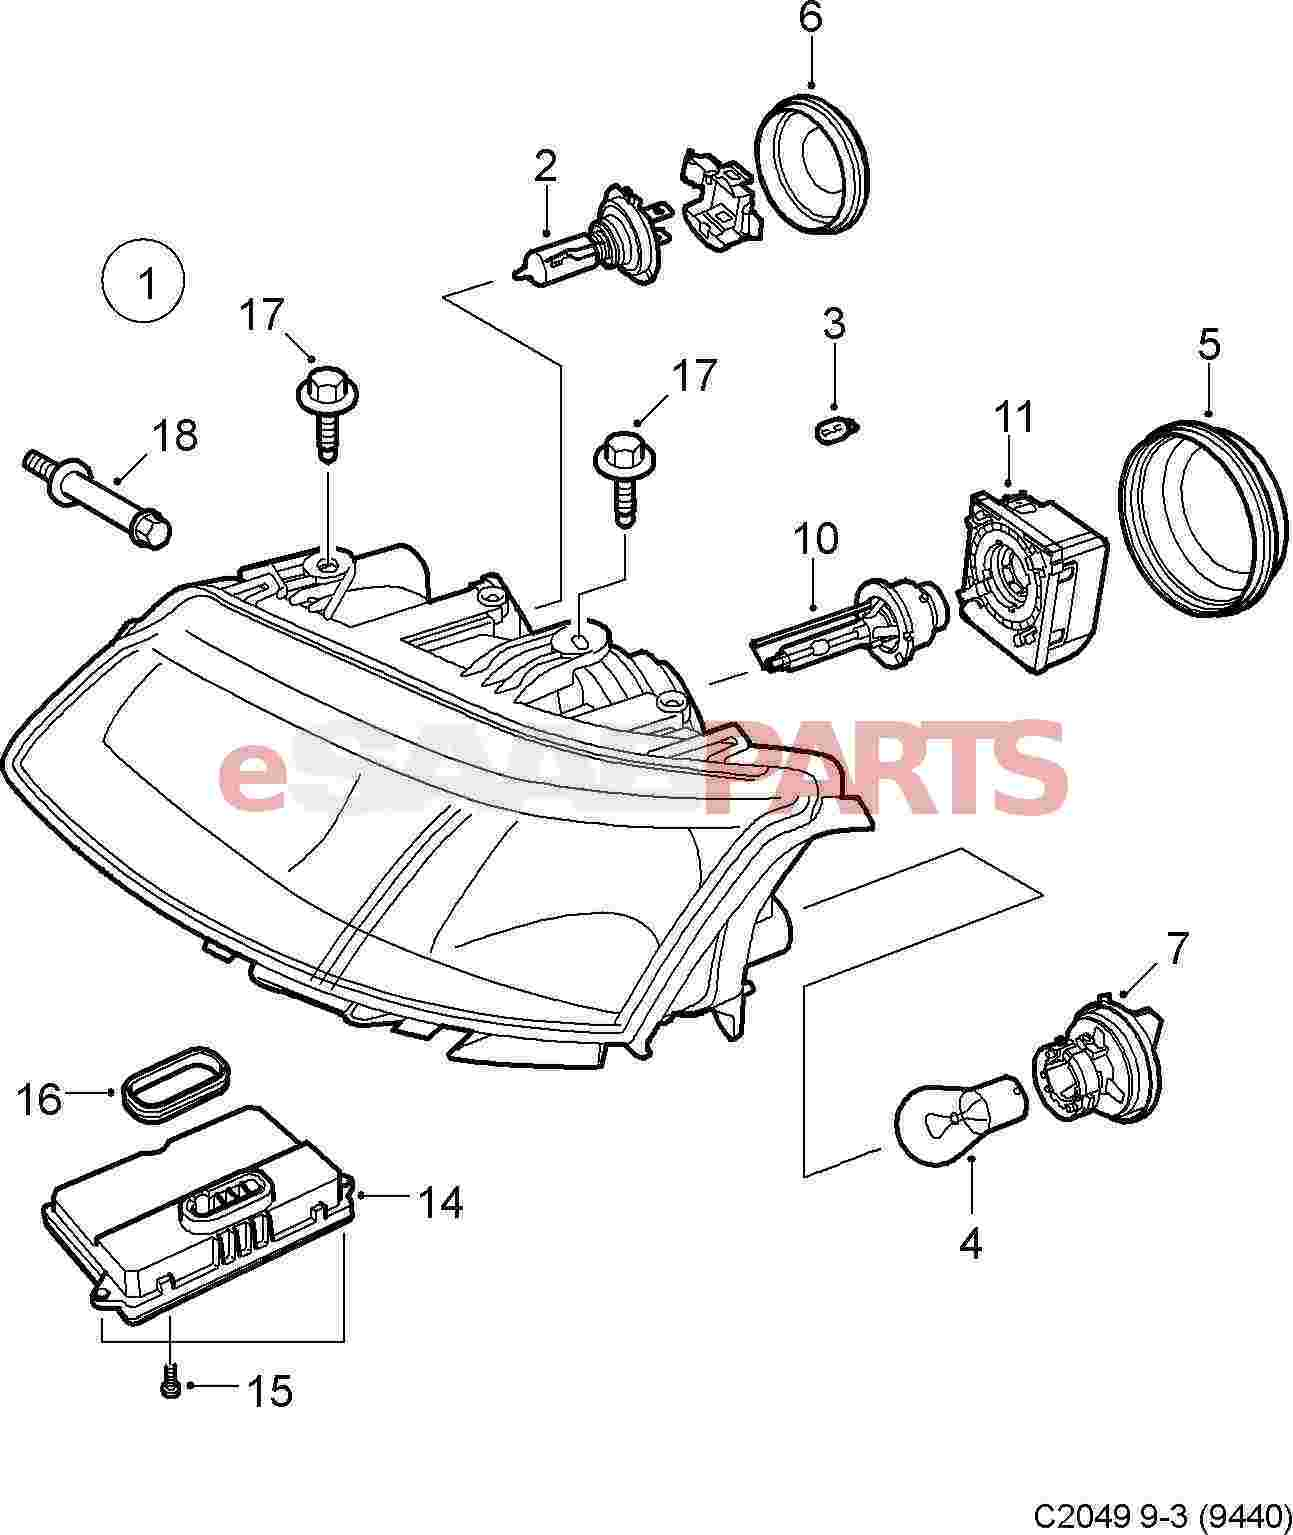 hight resolution of f10 fuse box wiring diagram fuse box 2012 mustang fuse diagram 2015 mustang fuse diagram